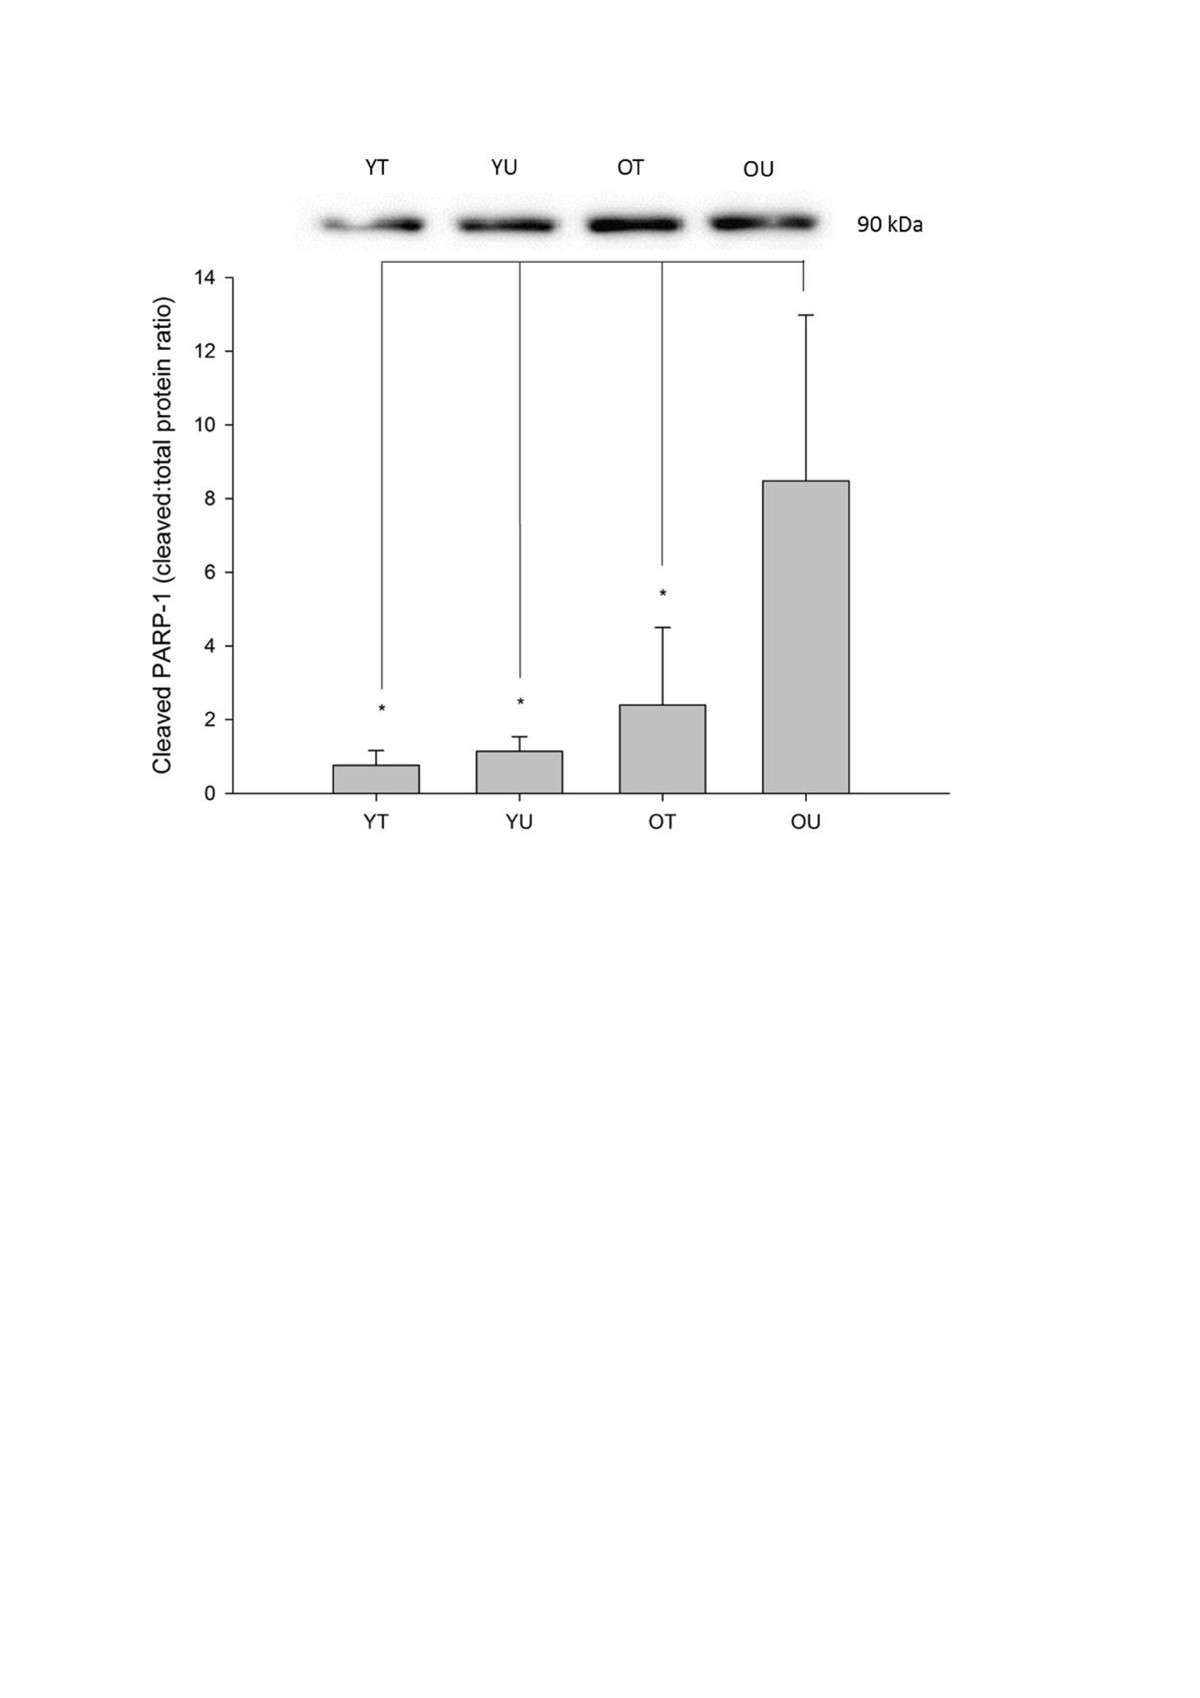 https://static-content.springer.com/image/art%3A10.1186%2F2046-2395-2-11/MediaObjects/13685_2013_Article_21_Fig2_HTML.jpg